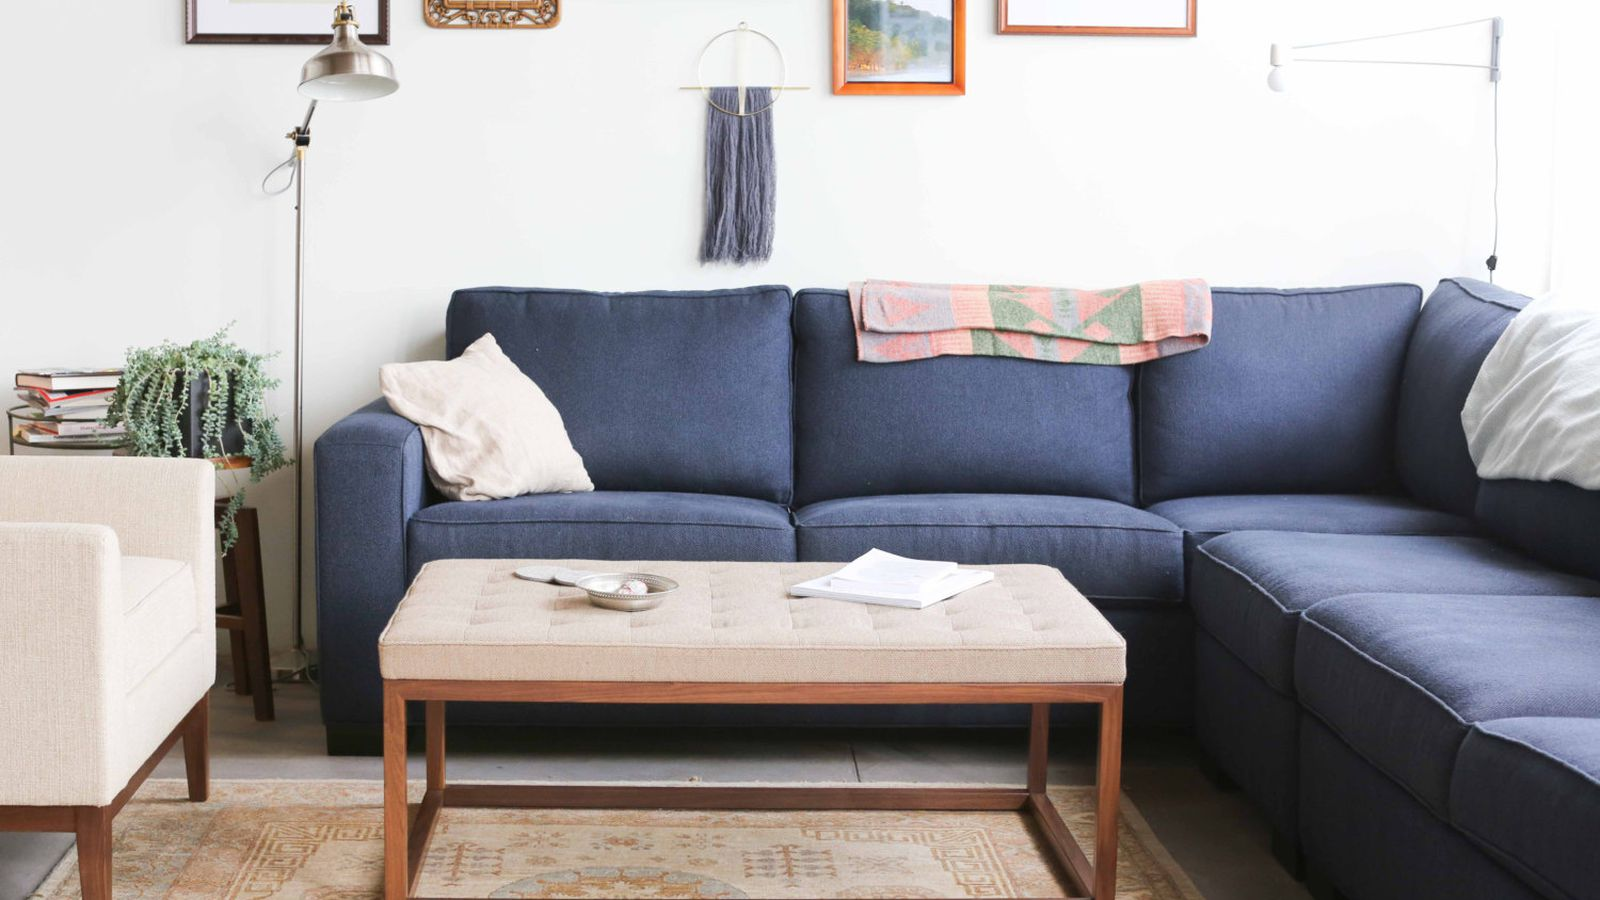 The 7 Best Etsy Furniture Shops Curbed